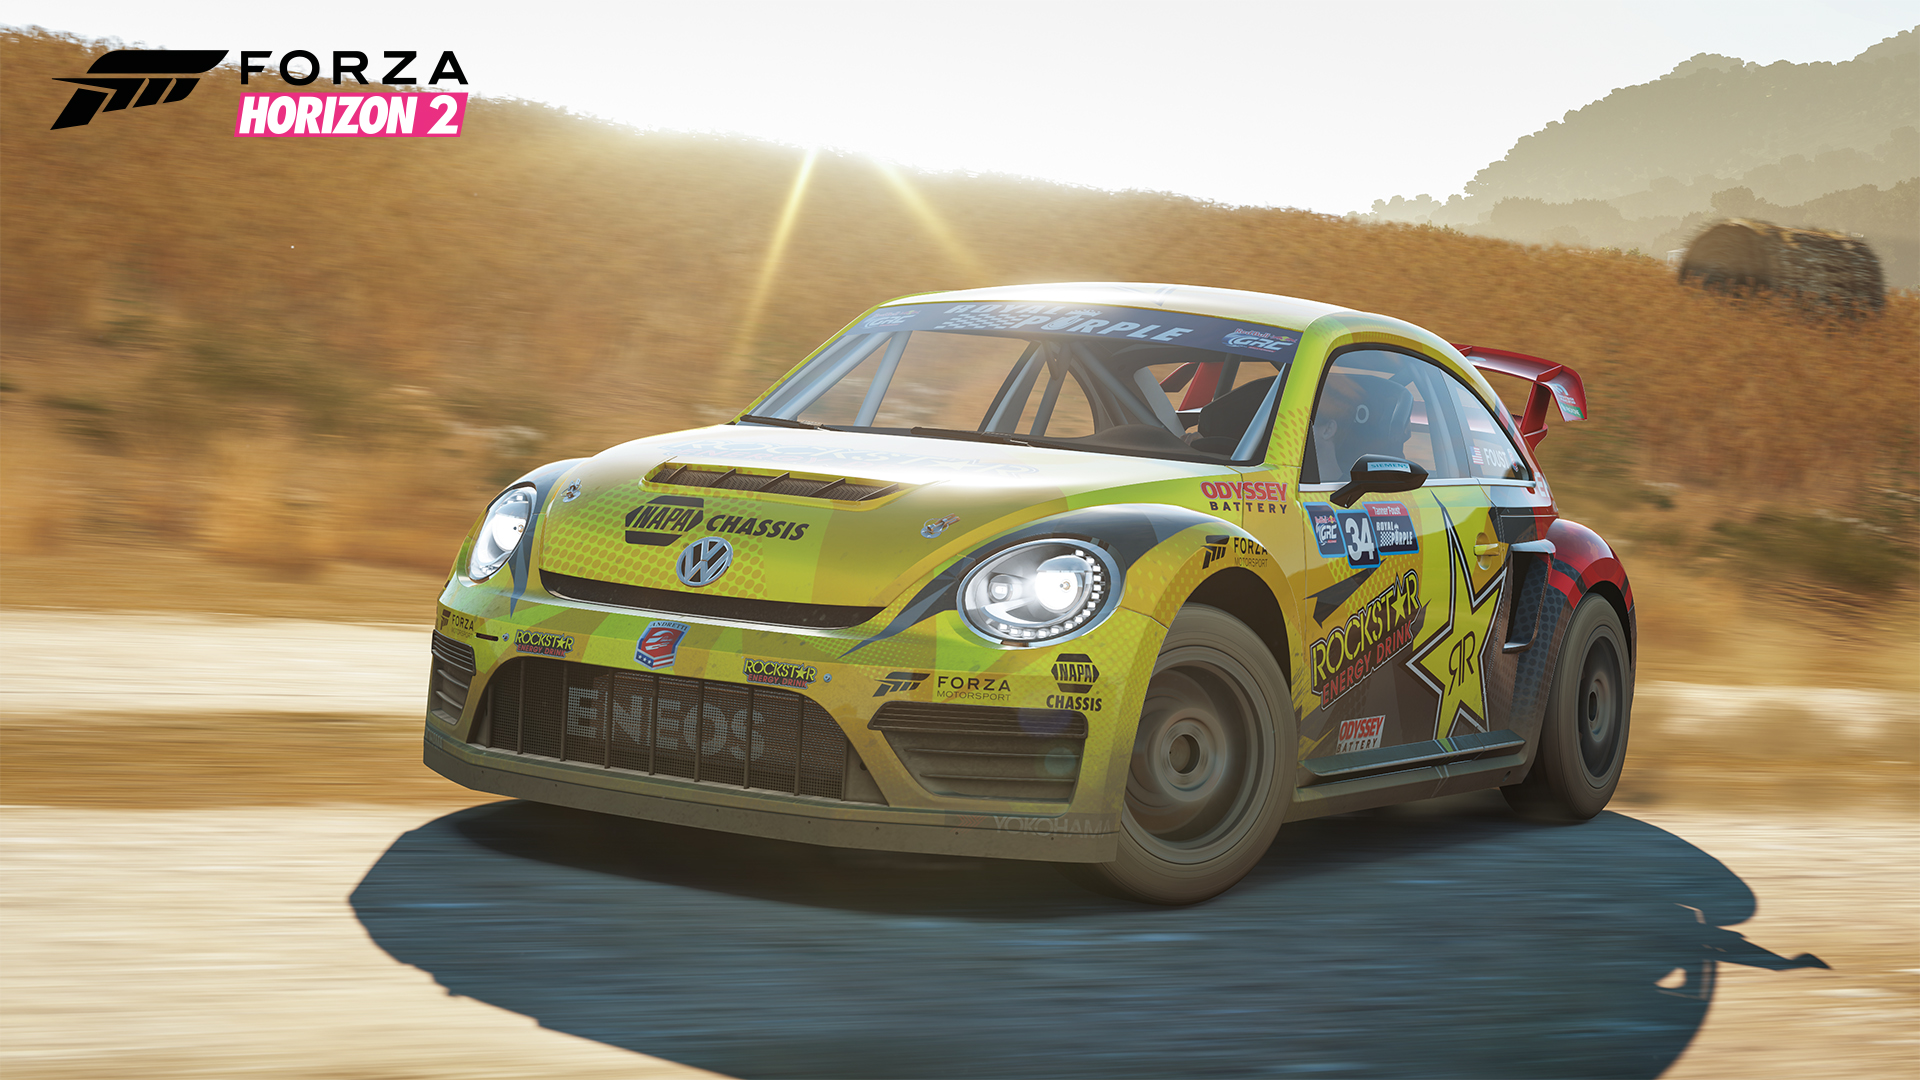 Rockstar Energy Car Pack Now Available For Forza Horizon 2